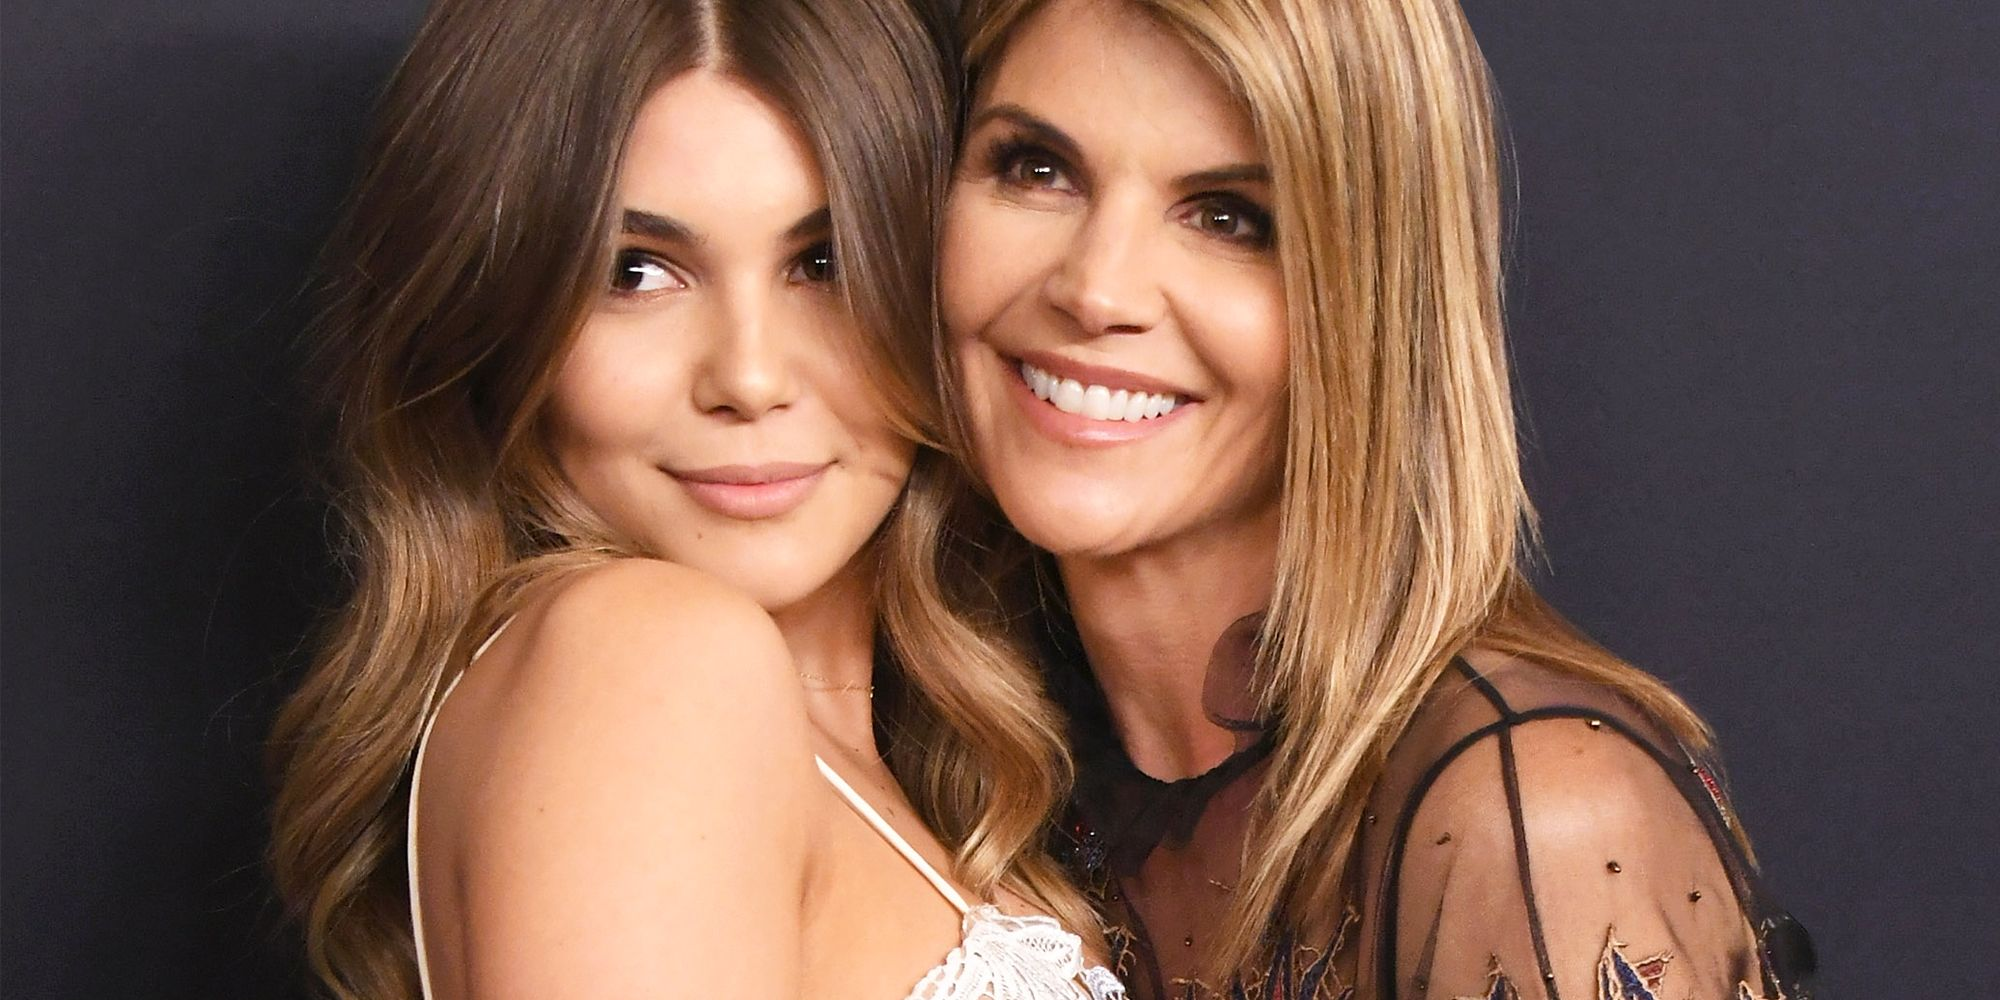 Olivia Jade Is Reportedly 'Really Angry' Her Parents 'Ruined Everything' for Her by Making Her Go to College